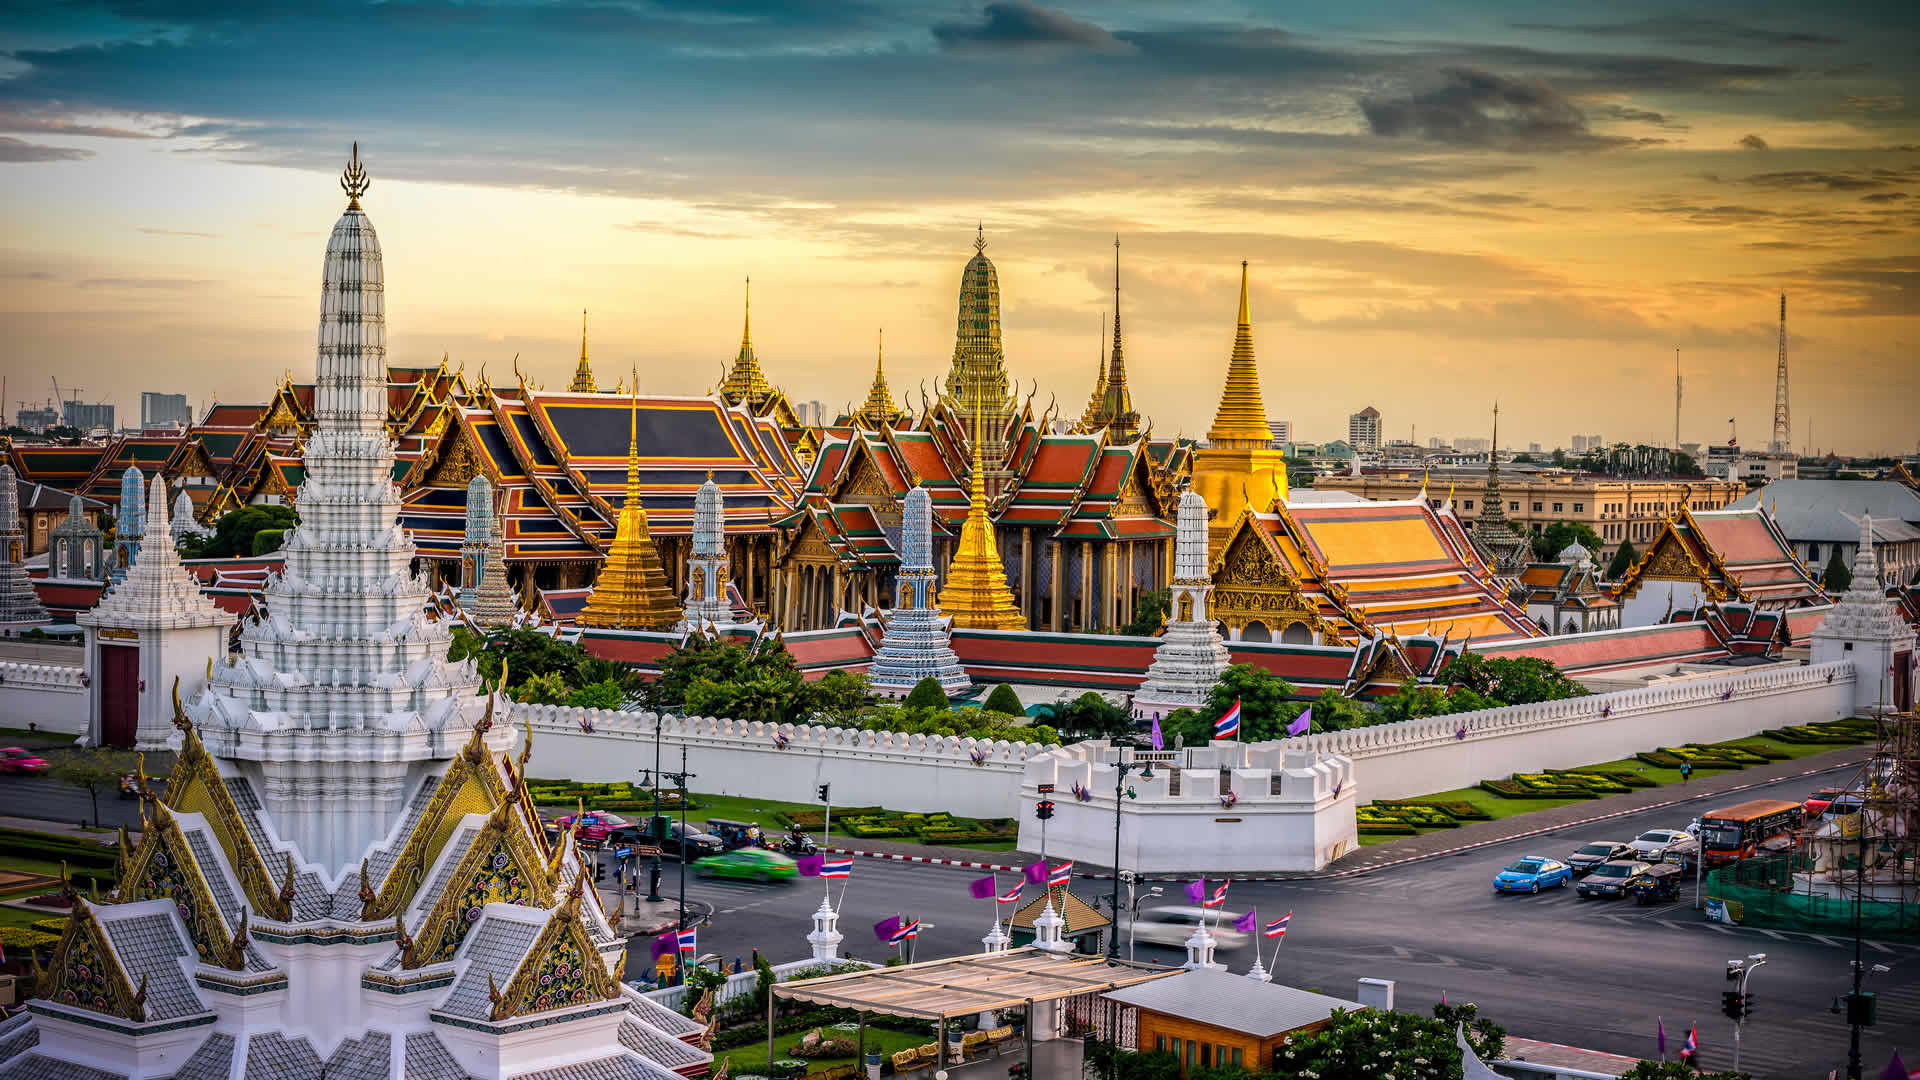 Thonburi Klongs & Grand Palace Morning Tour Thailand Booking with Lower Rate